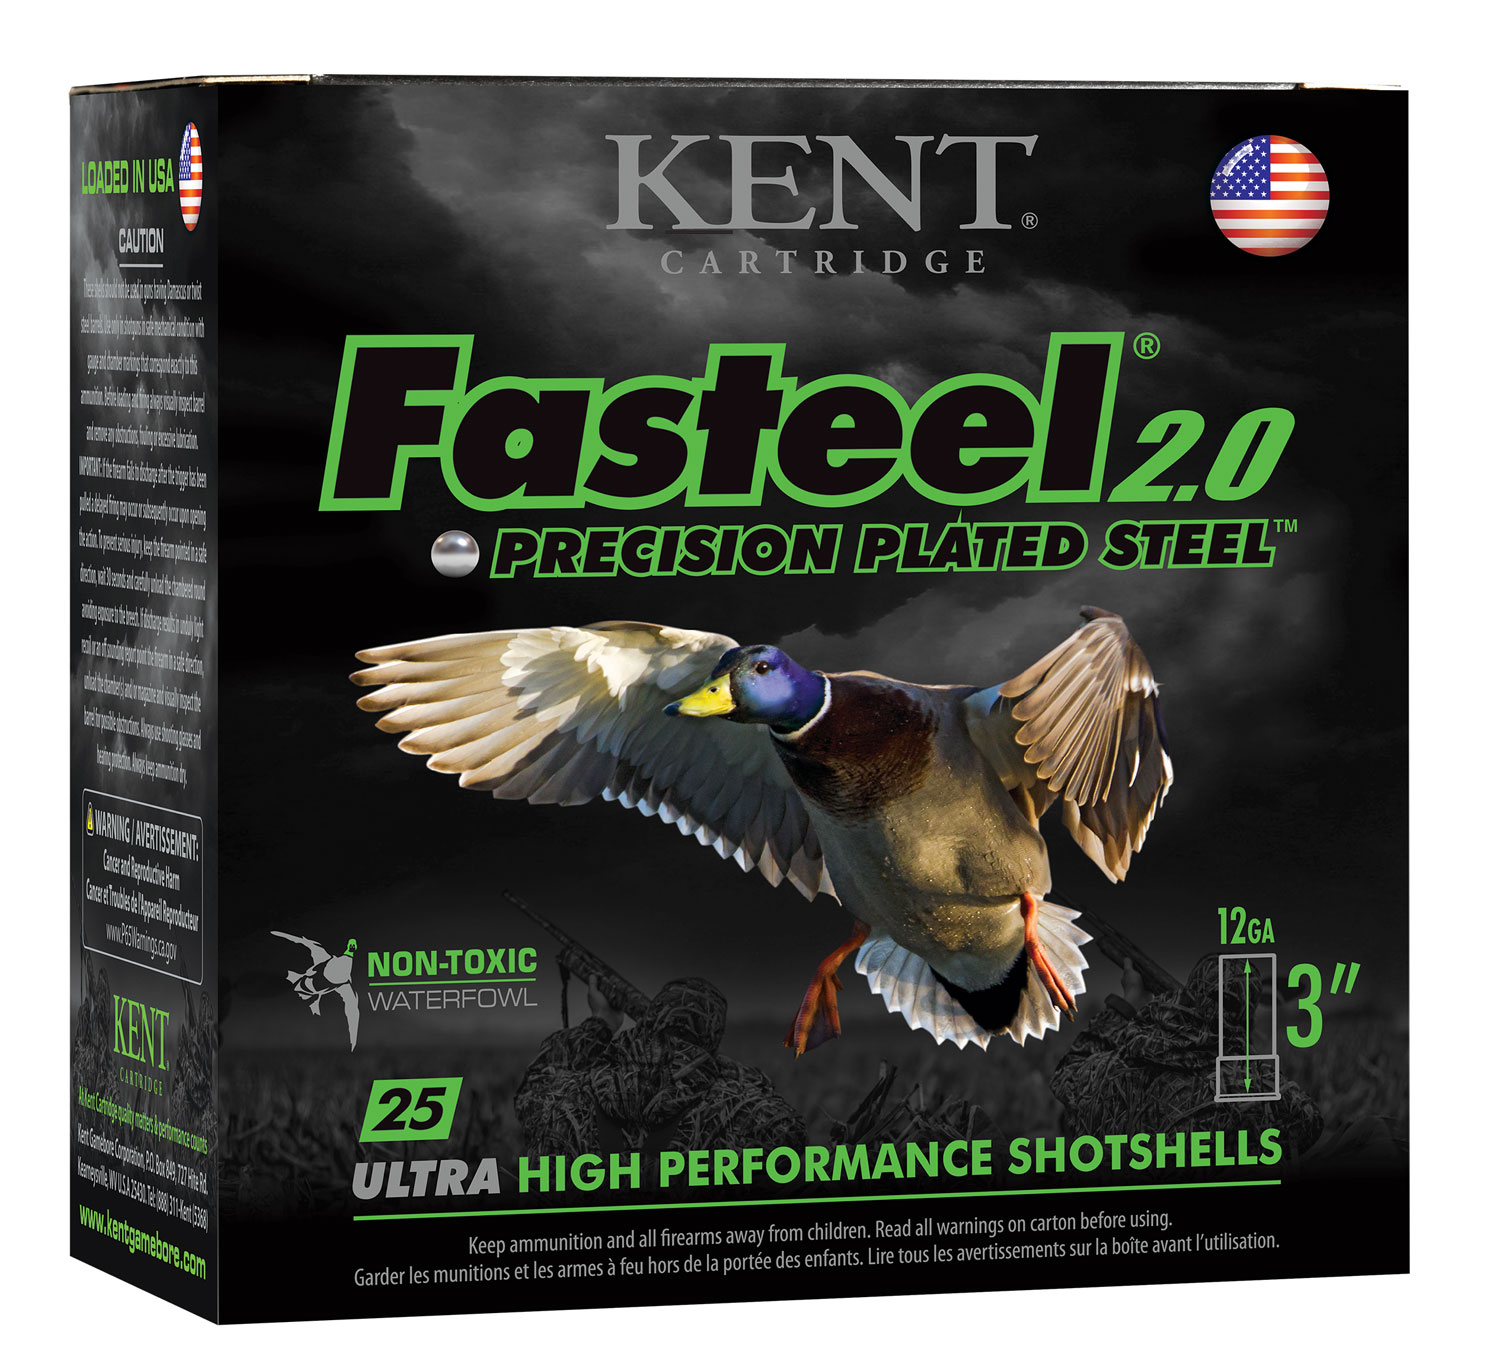 Kent Cartridge K123FS323 Fasteel 2.0  12 Gauge 3